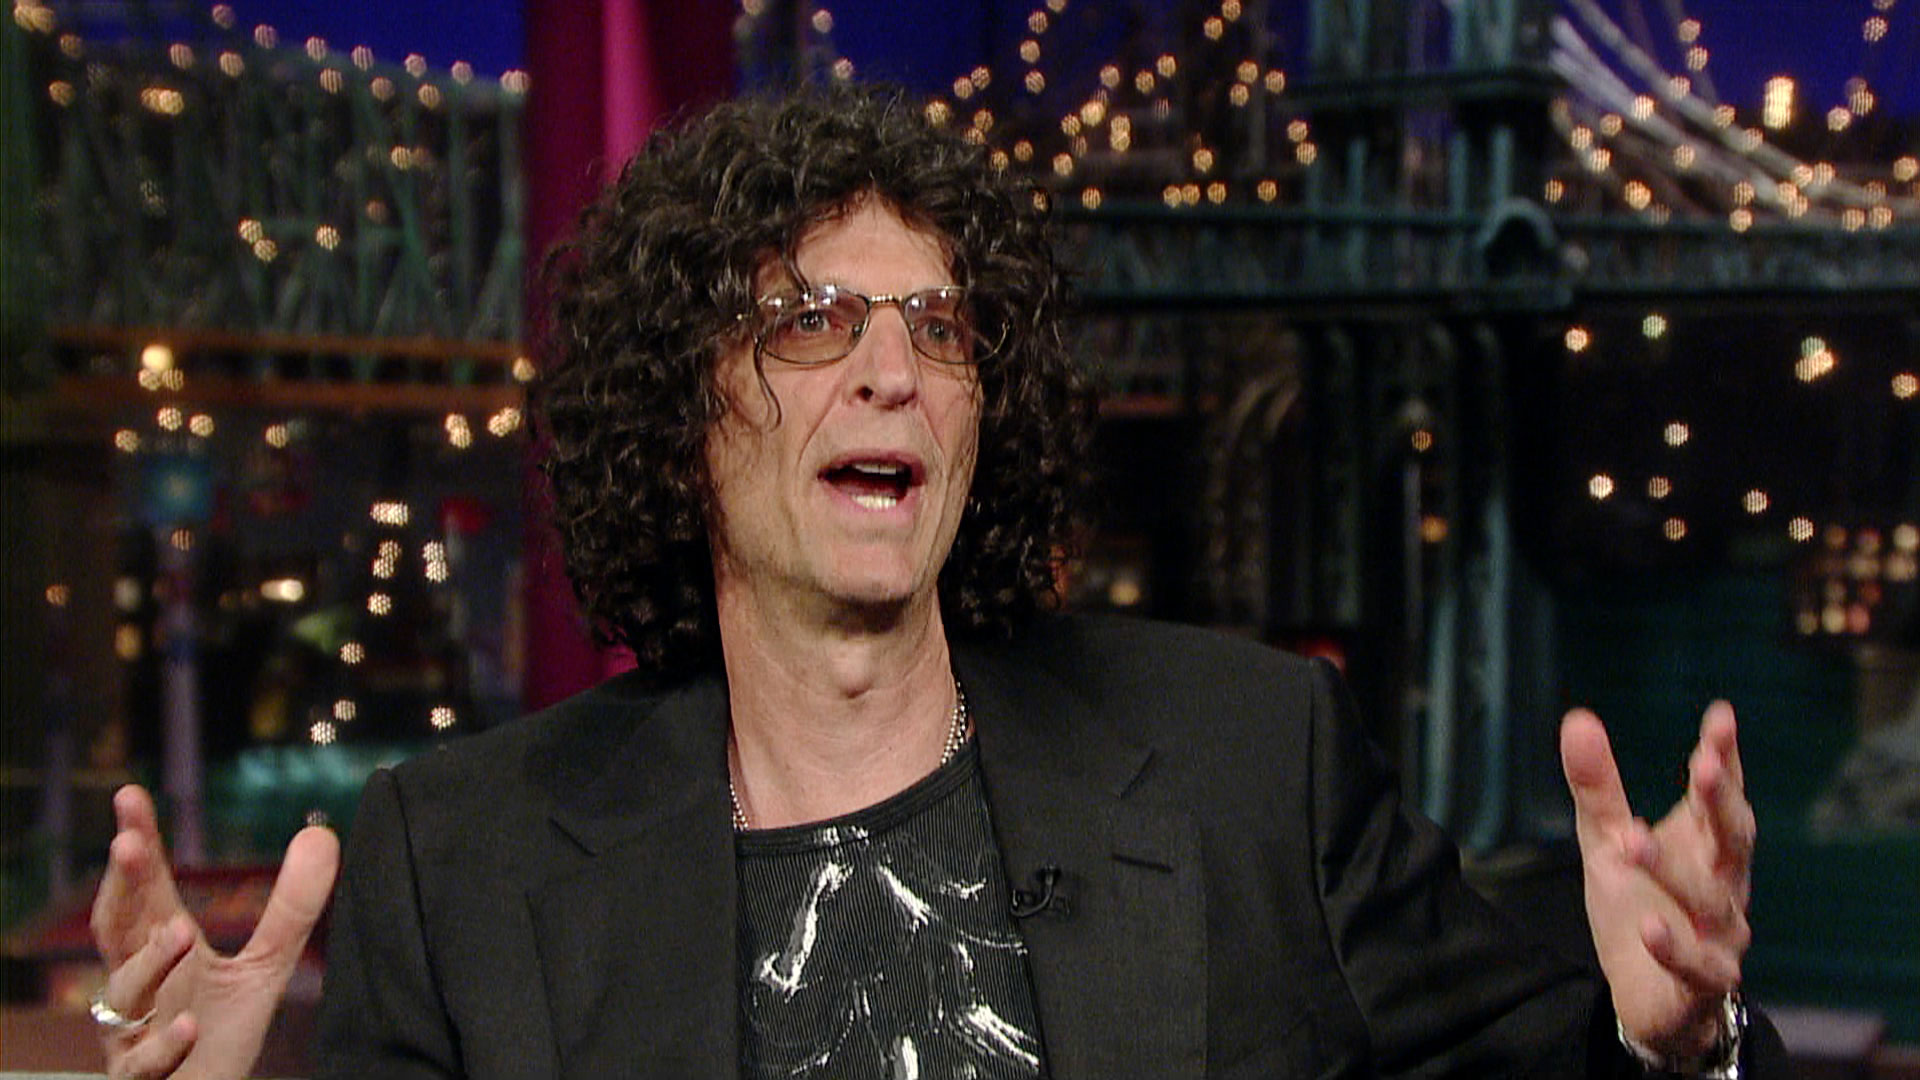 Howard Stern talks about Juggalos and the Gathering ...